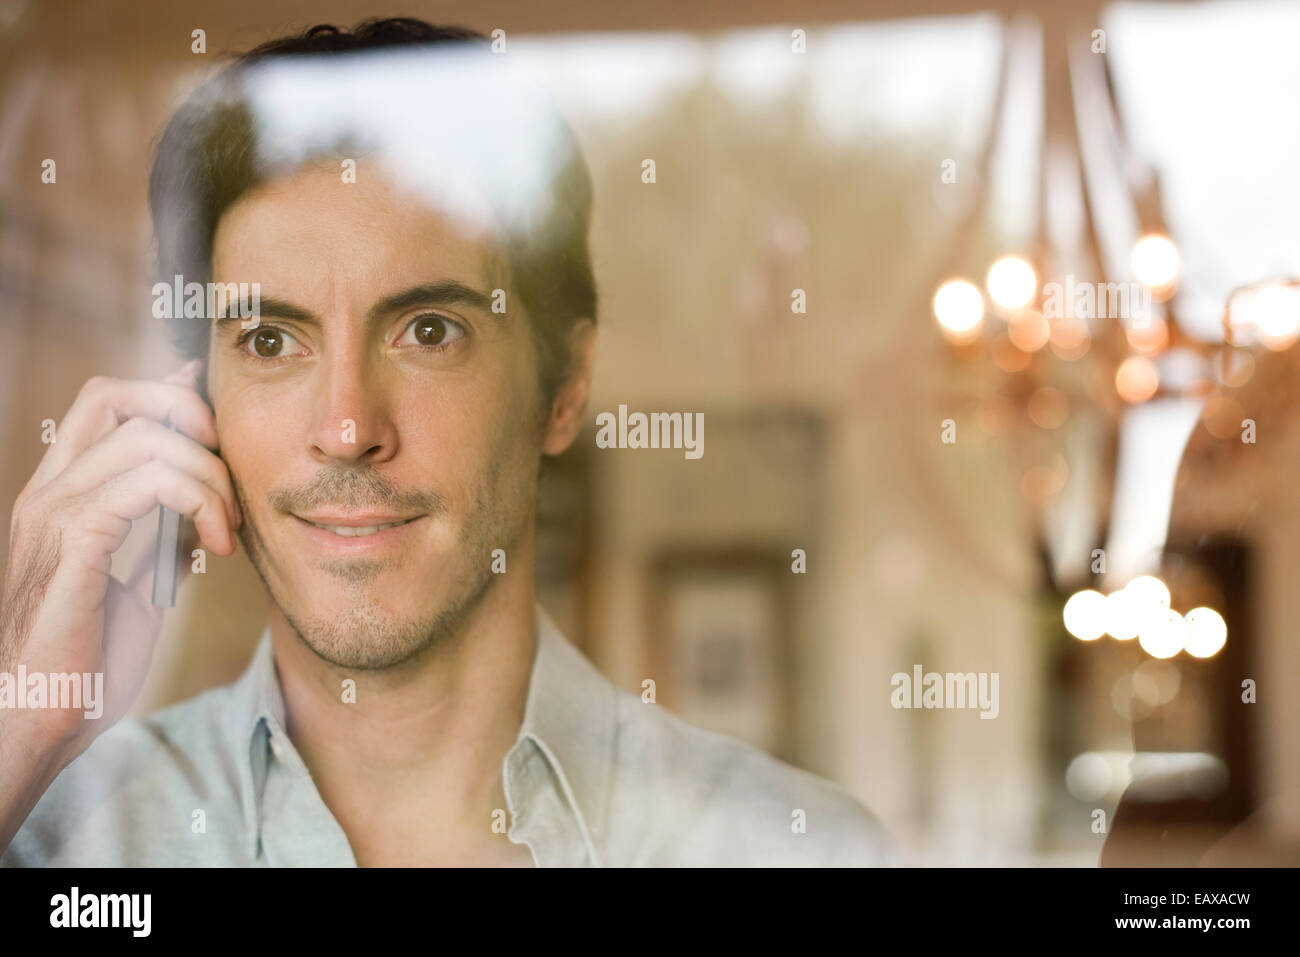 Man using cell phone looking out window - Stock Image